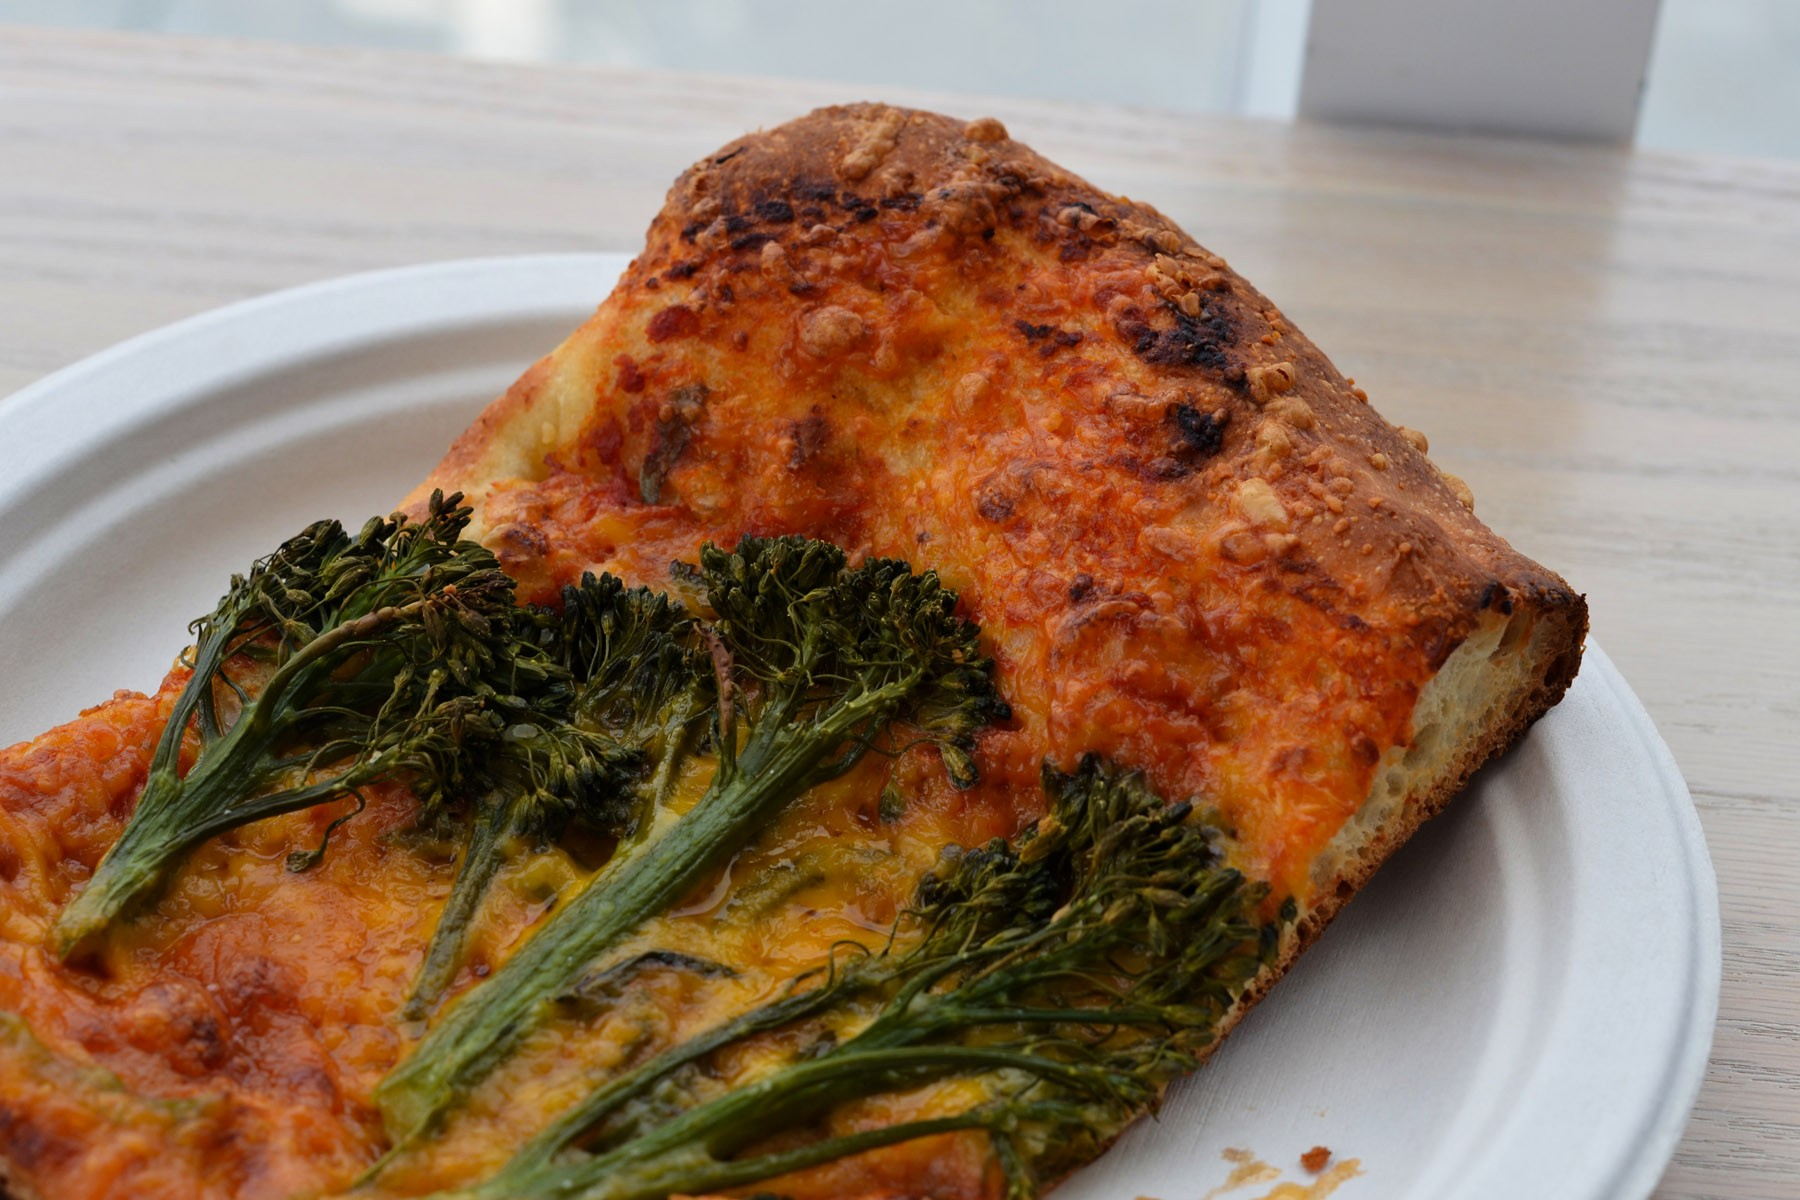 A big fat slice of vegetarian pizza, served on a compostable plate.